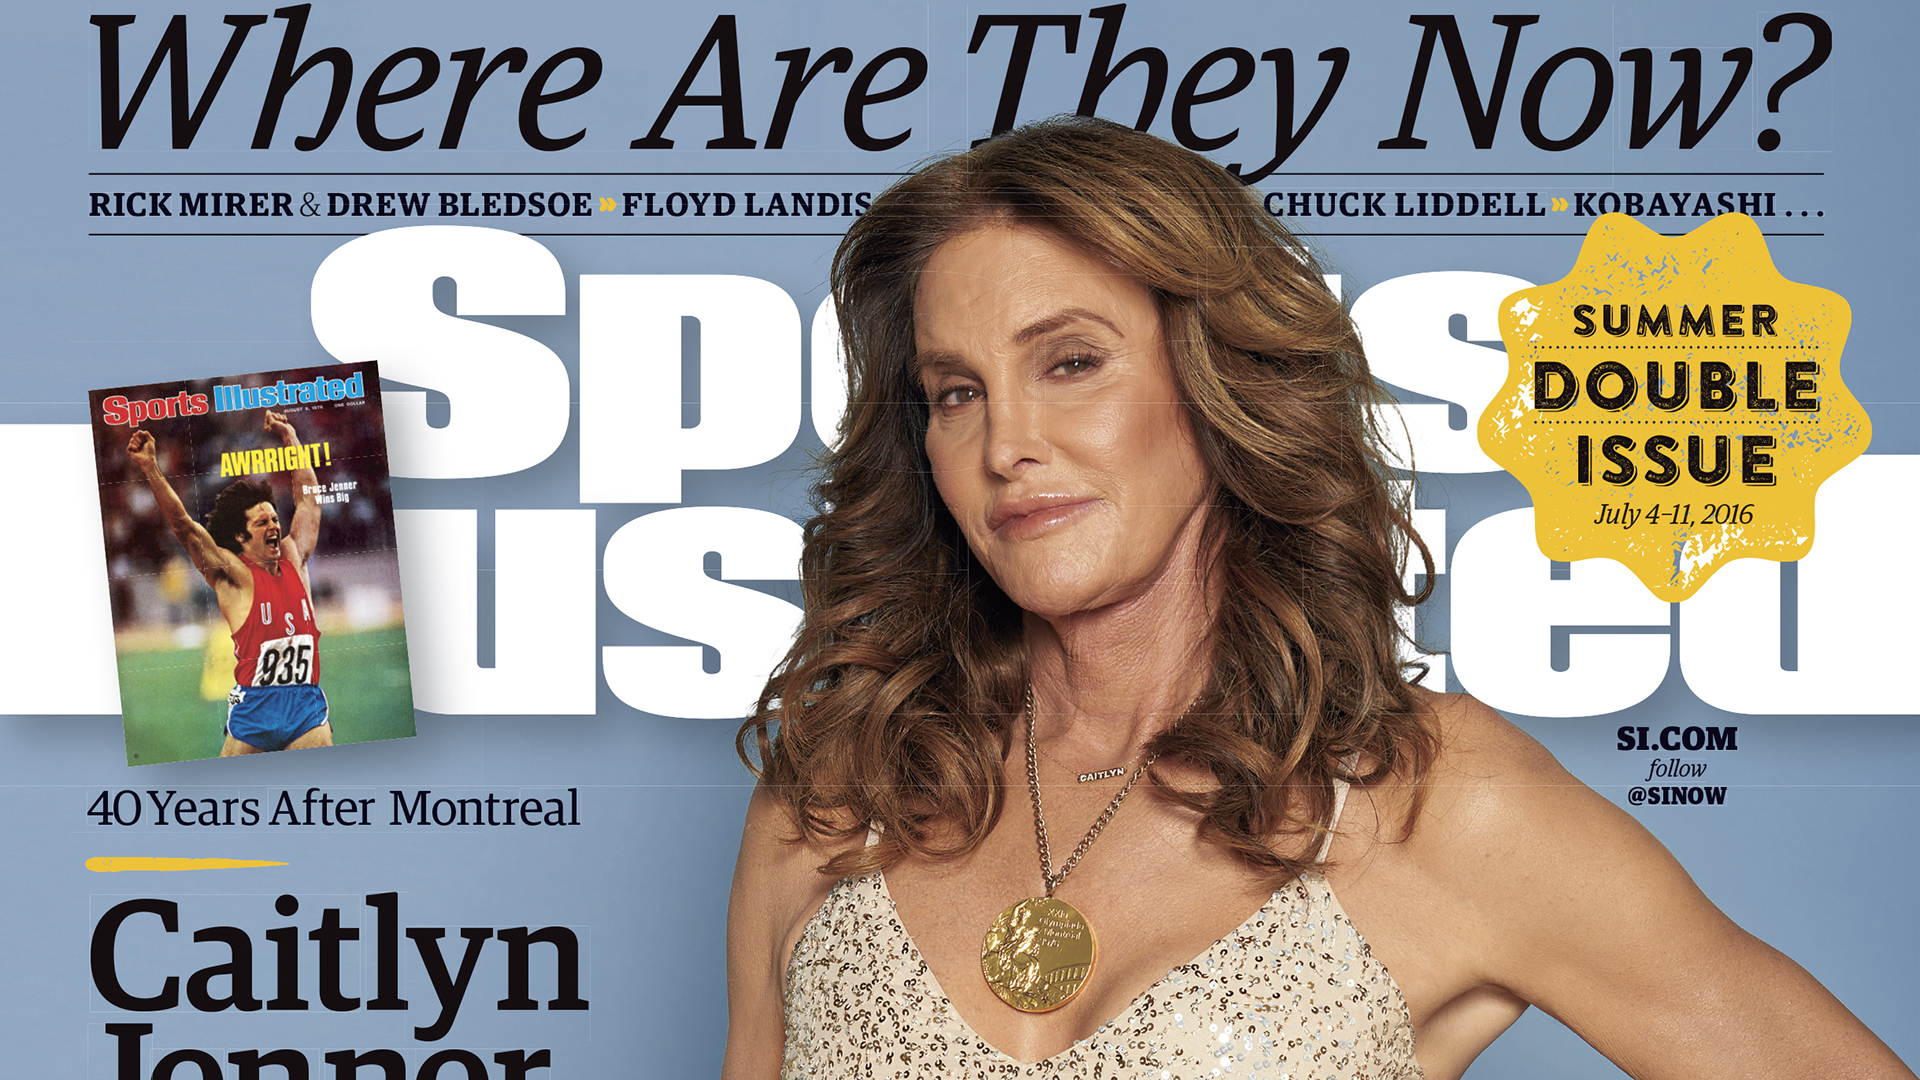 See Caitlyn Jenner's historic Sports Illustrated cover